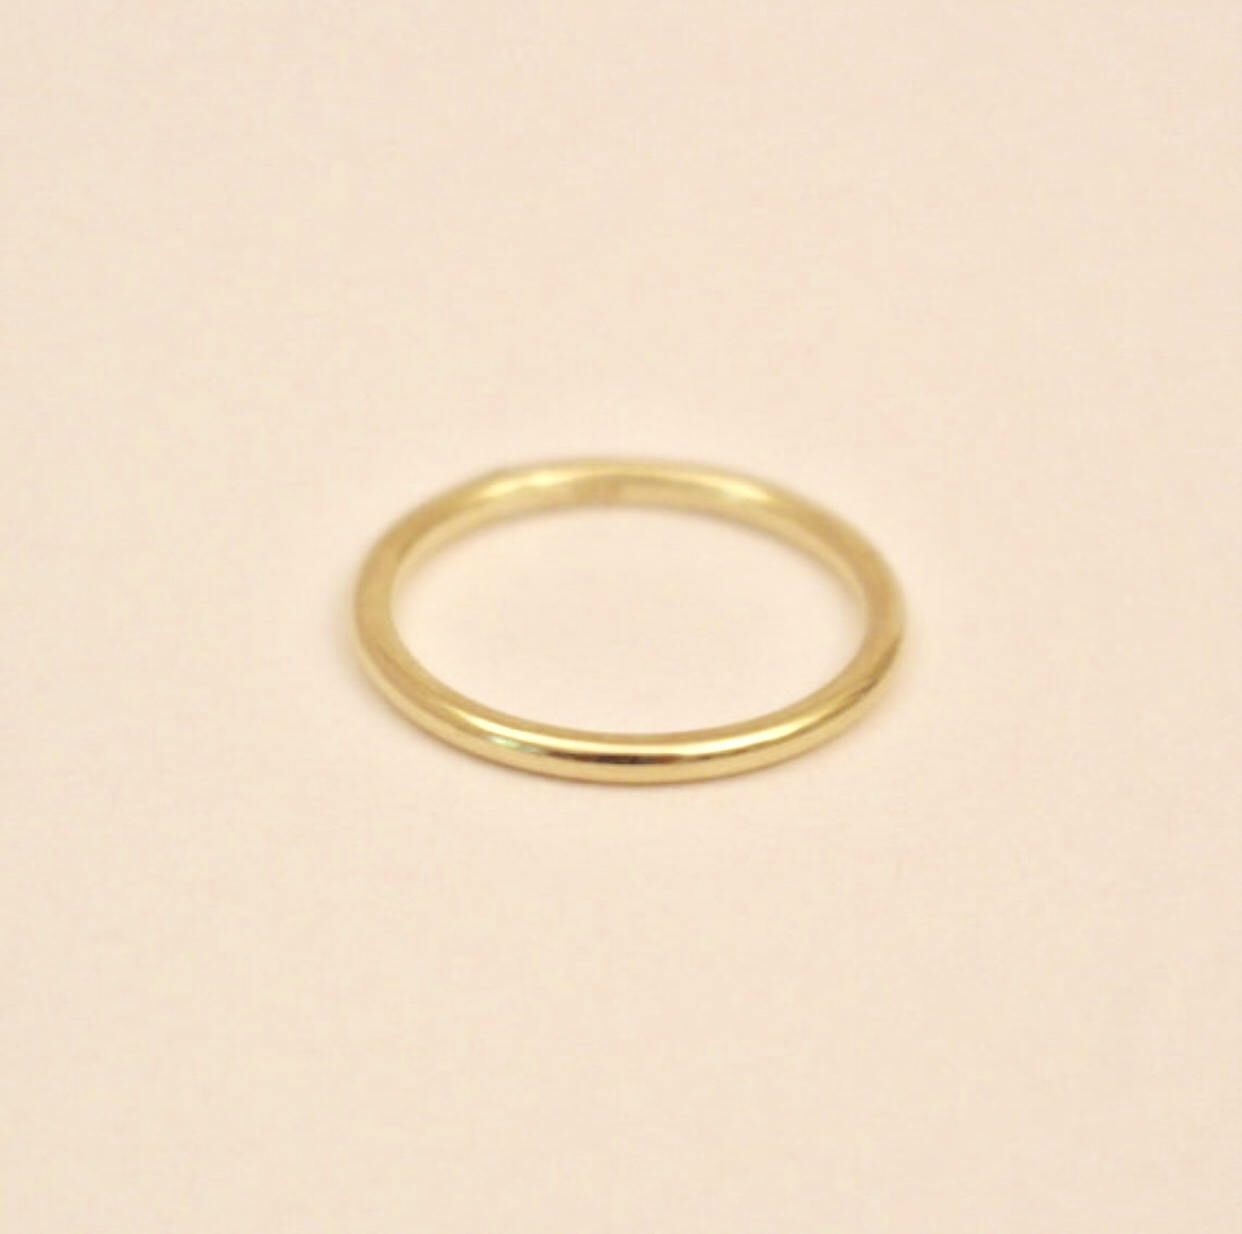 10k Gold Ring10k Band Ring10k Full Round Ring 10k Gold Band Etsy 10k Engagement Ring Gold Band Ring 10k Gold Ring